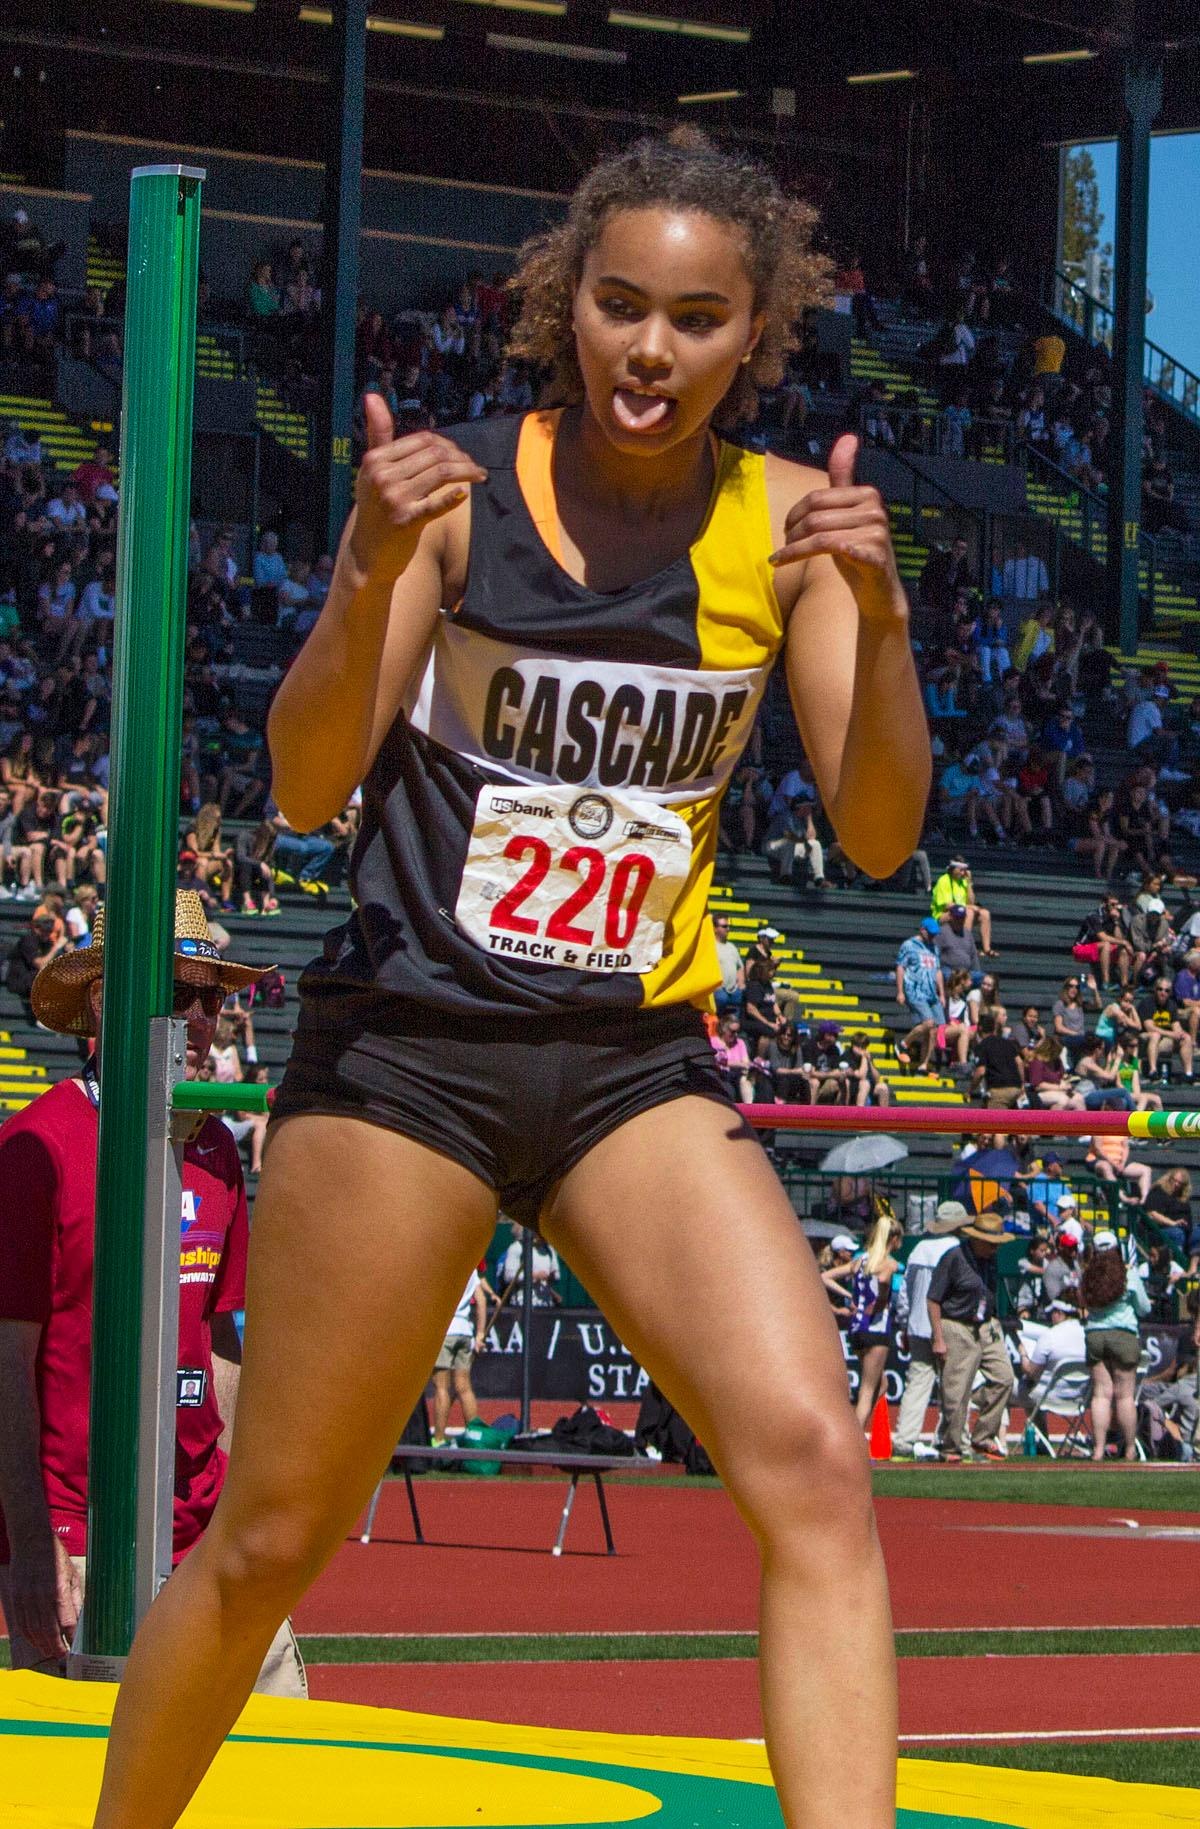 Kalulu Ngaida celebrates after clearing 5.03.00 in the 4A Girls High Jump at the OSAA Track and Field State Championships at Hayward Field. Photo by Nichole Louchios, Oregon News Lab.